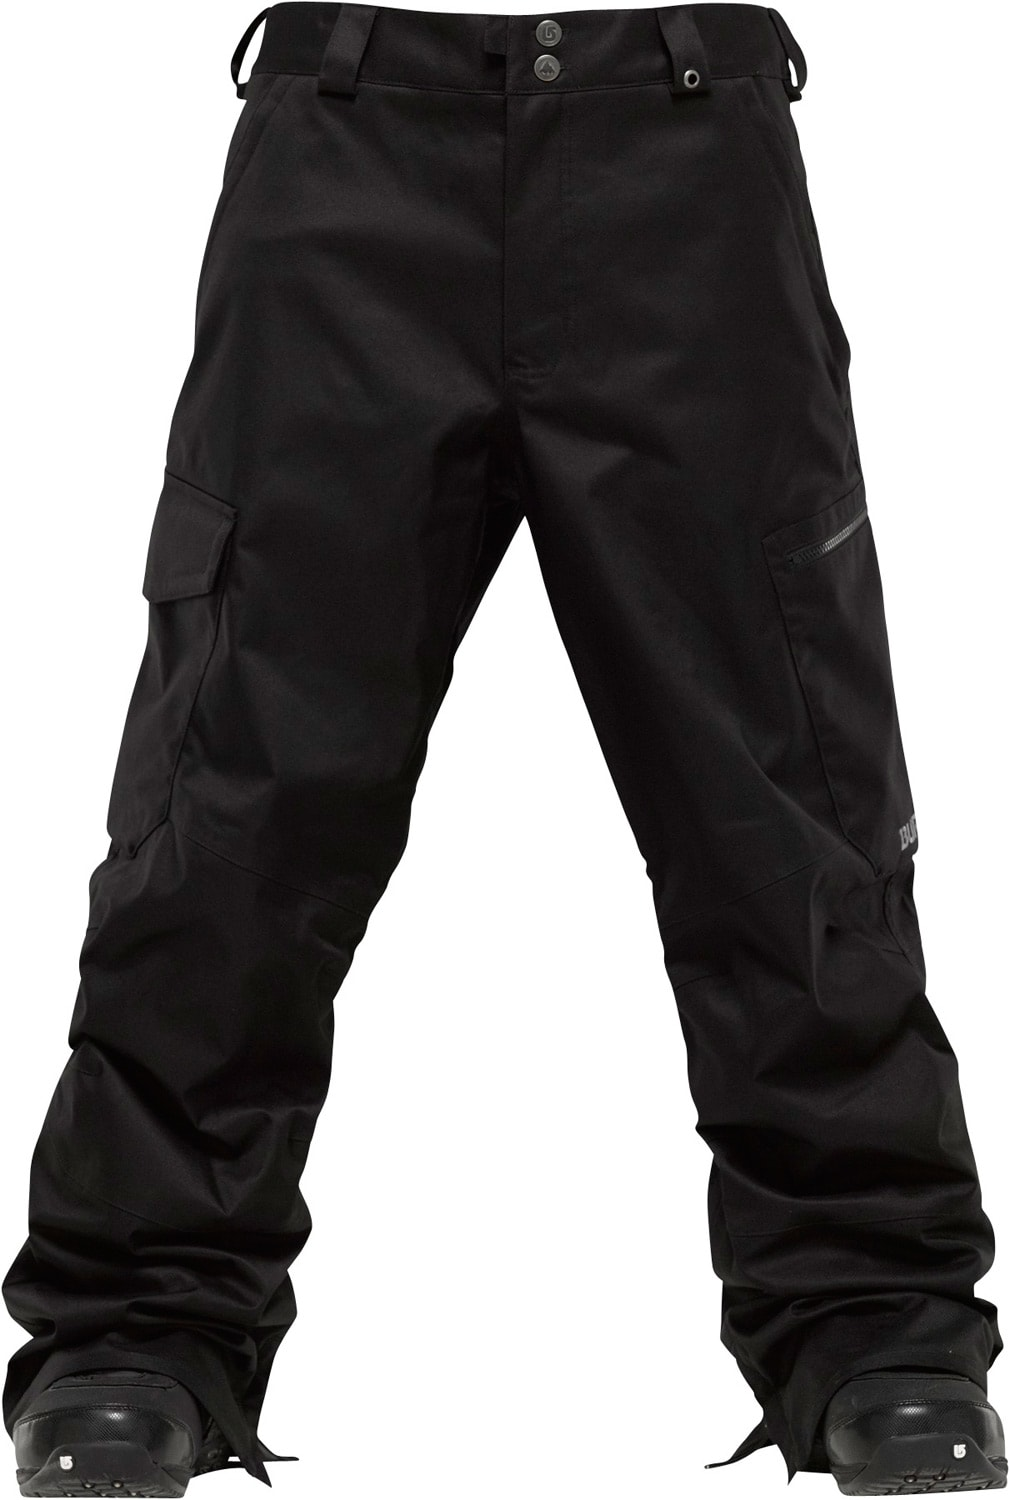 Shop for Burton Cargo Snowboard Pants True Black - Men's